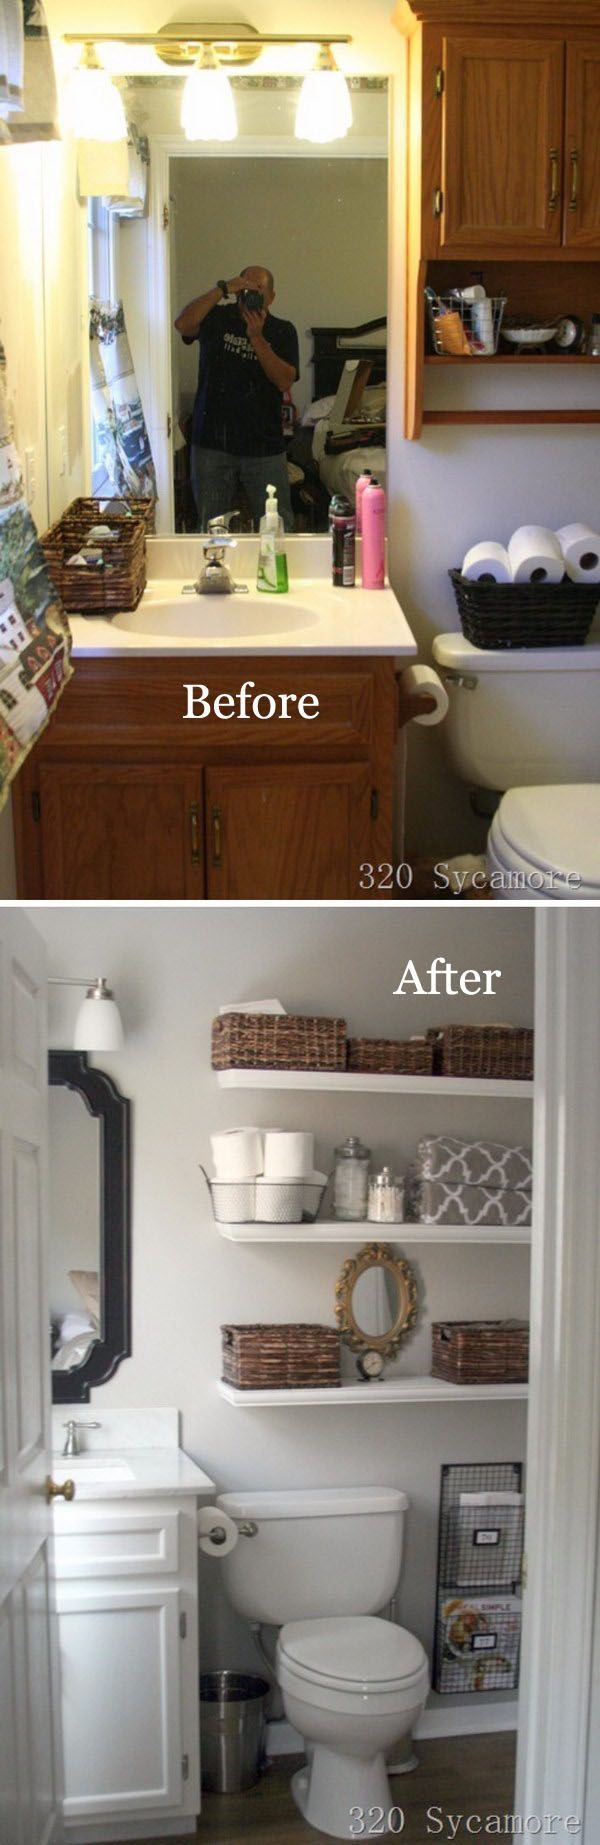 Image Of Before and After Awesome Bathroom Makeovers